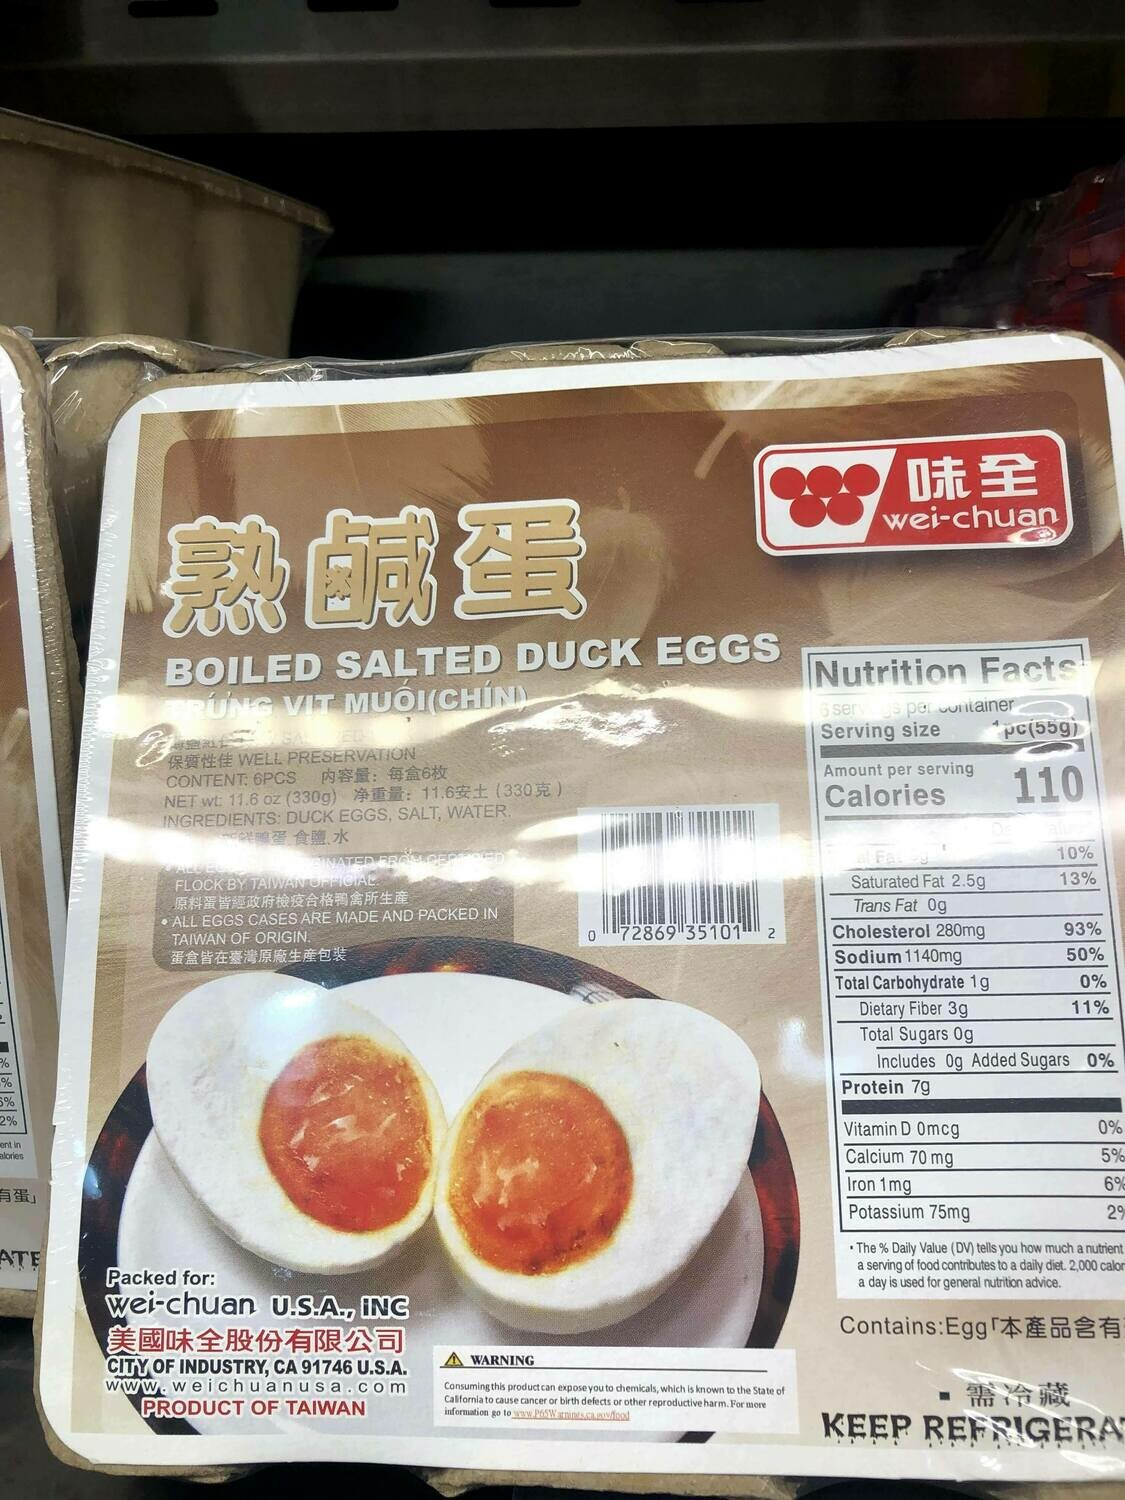 【RBF】Boiled Salted Duck Eg熟咸蛋6pc